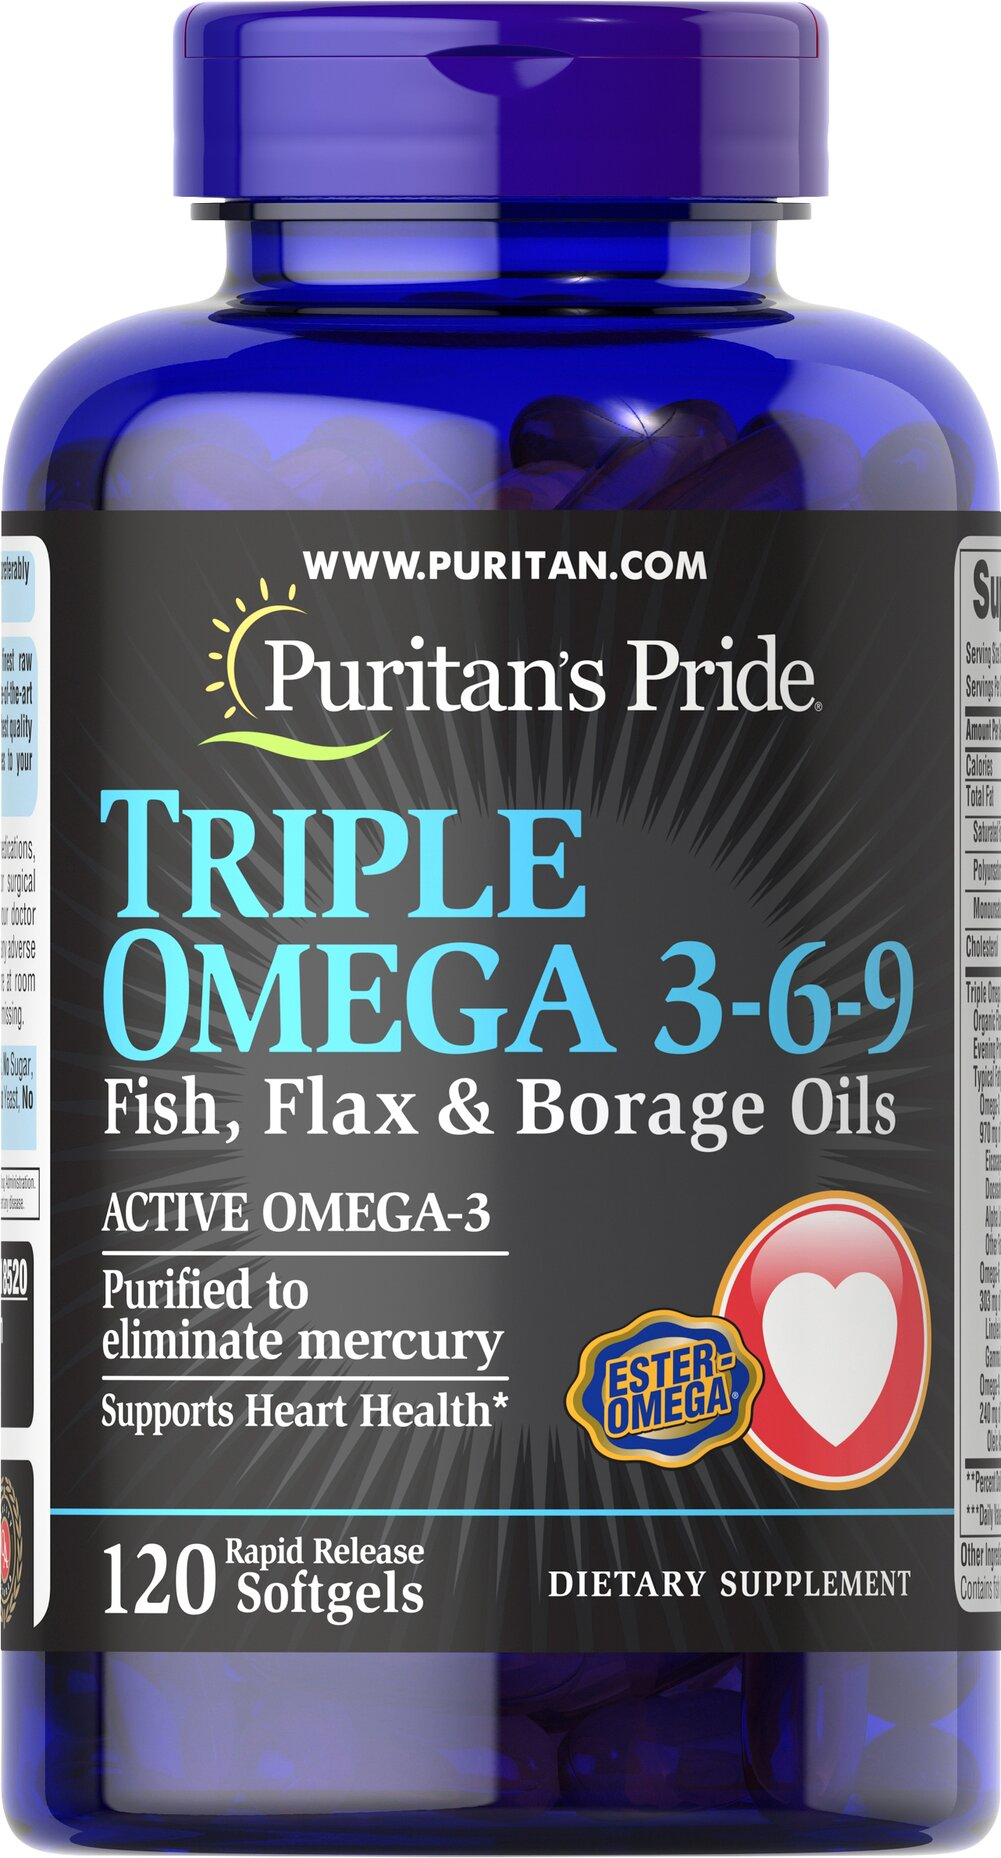 Triple Omega 3-6-9 Fish, Flax & Borage Oils  120 Softgels  $21.49